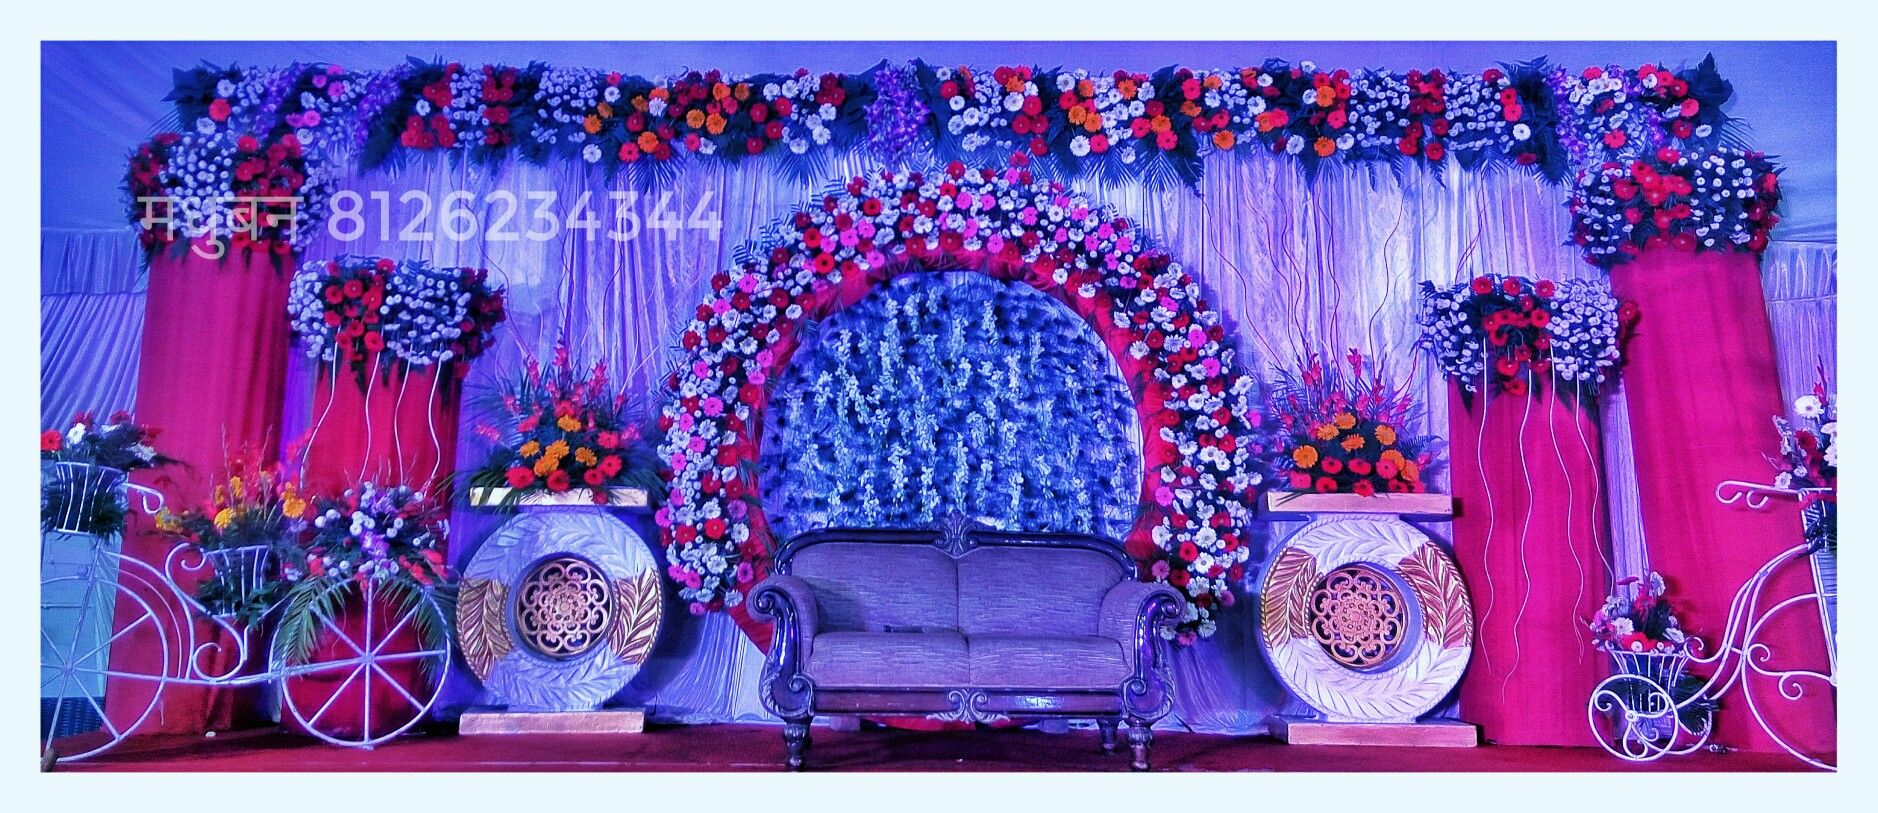 be a guest in your own event vedi mandap design event management in rishikesh wedding planner in rishikesh flower decoration party planner in rishikesh